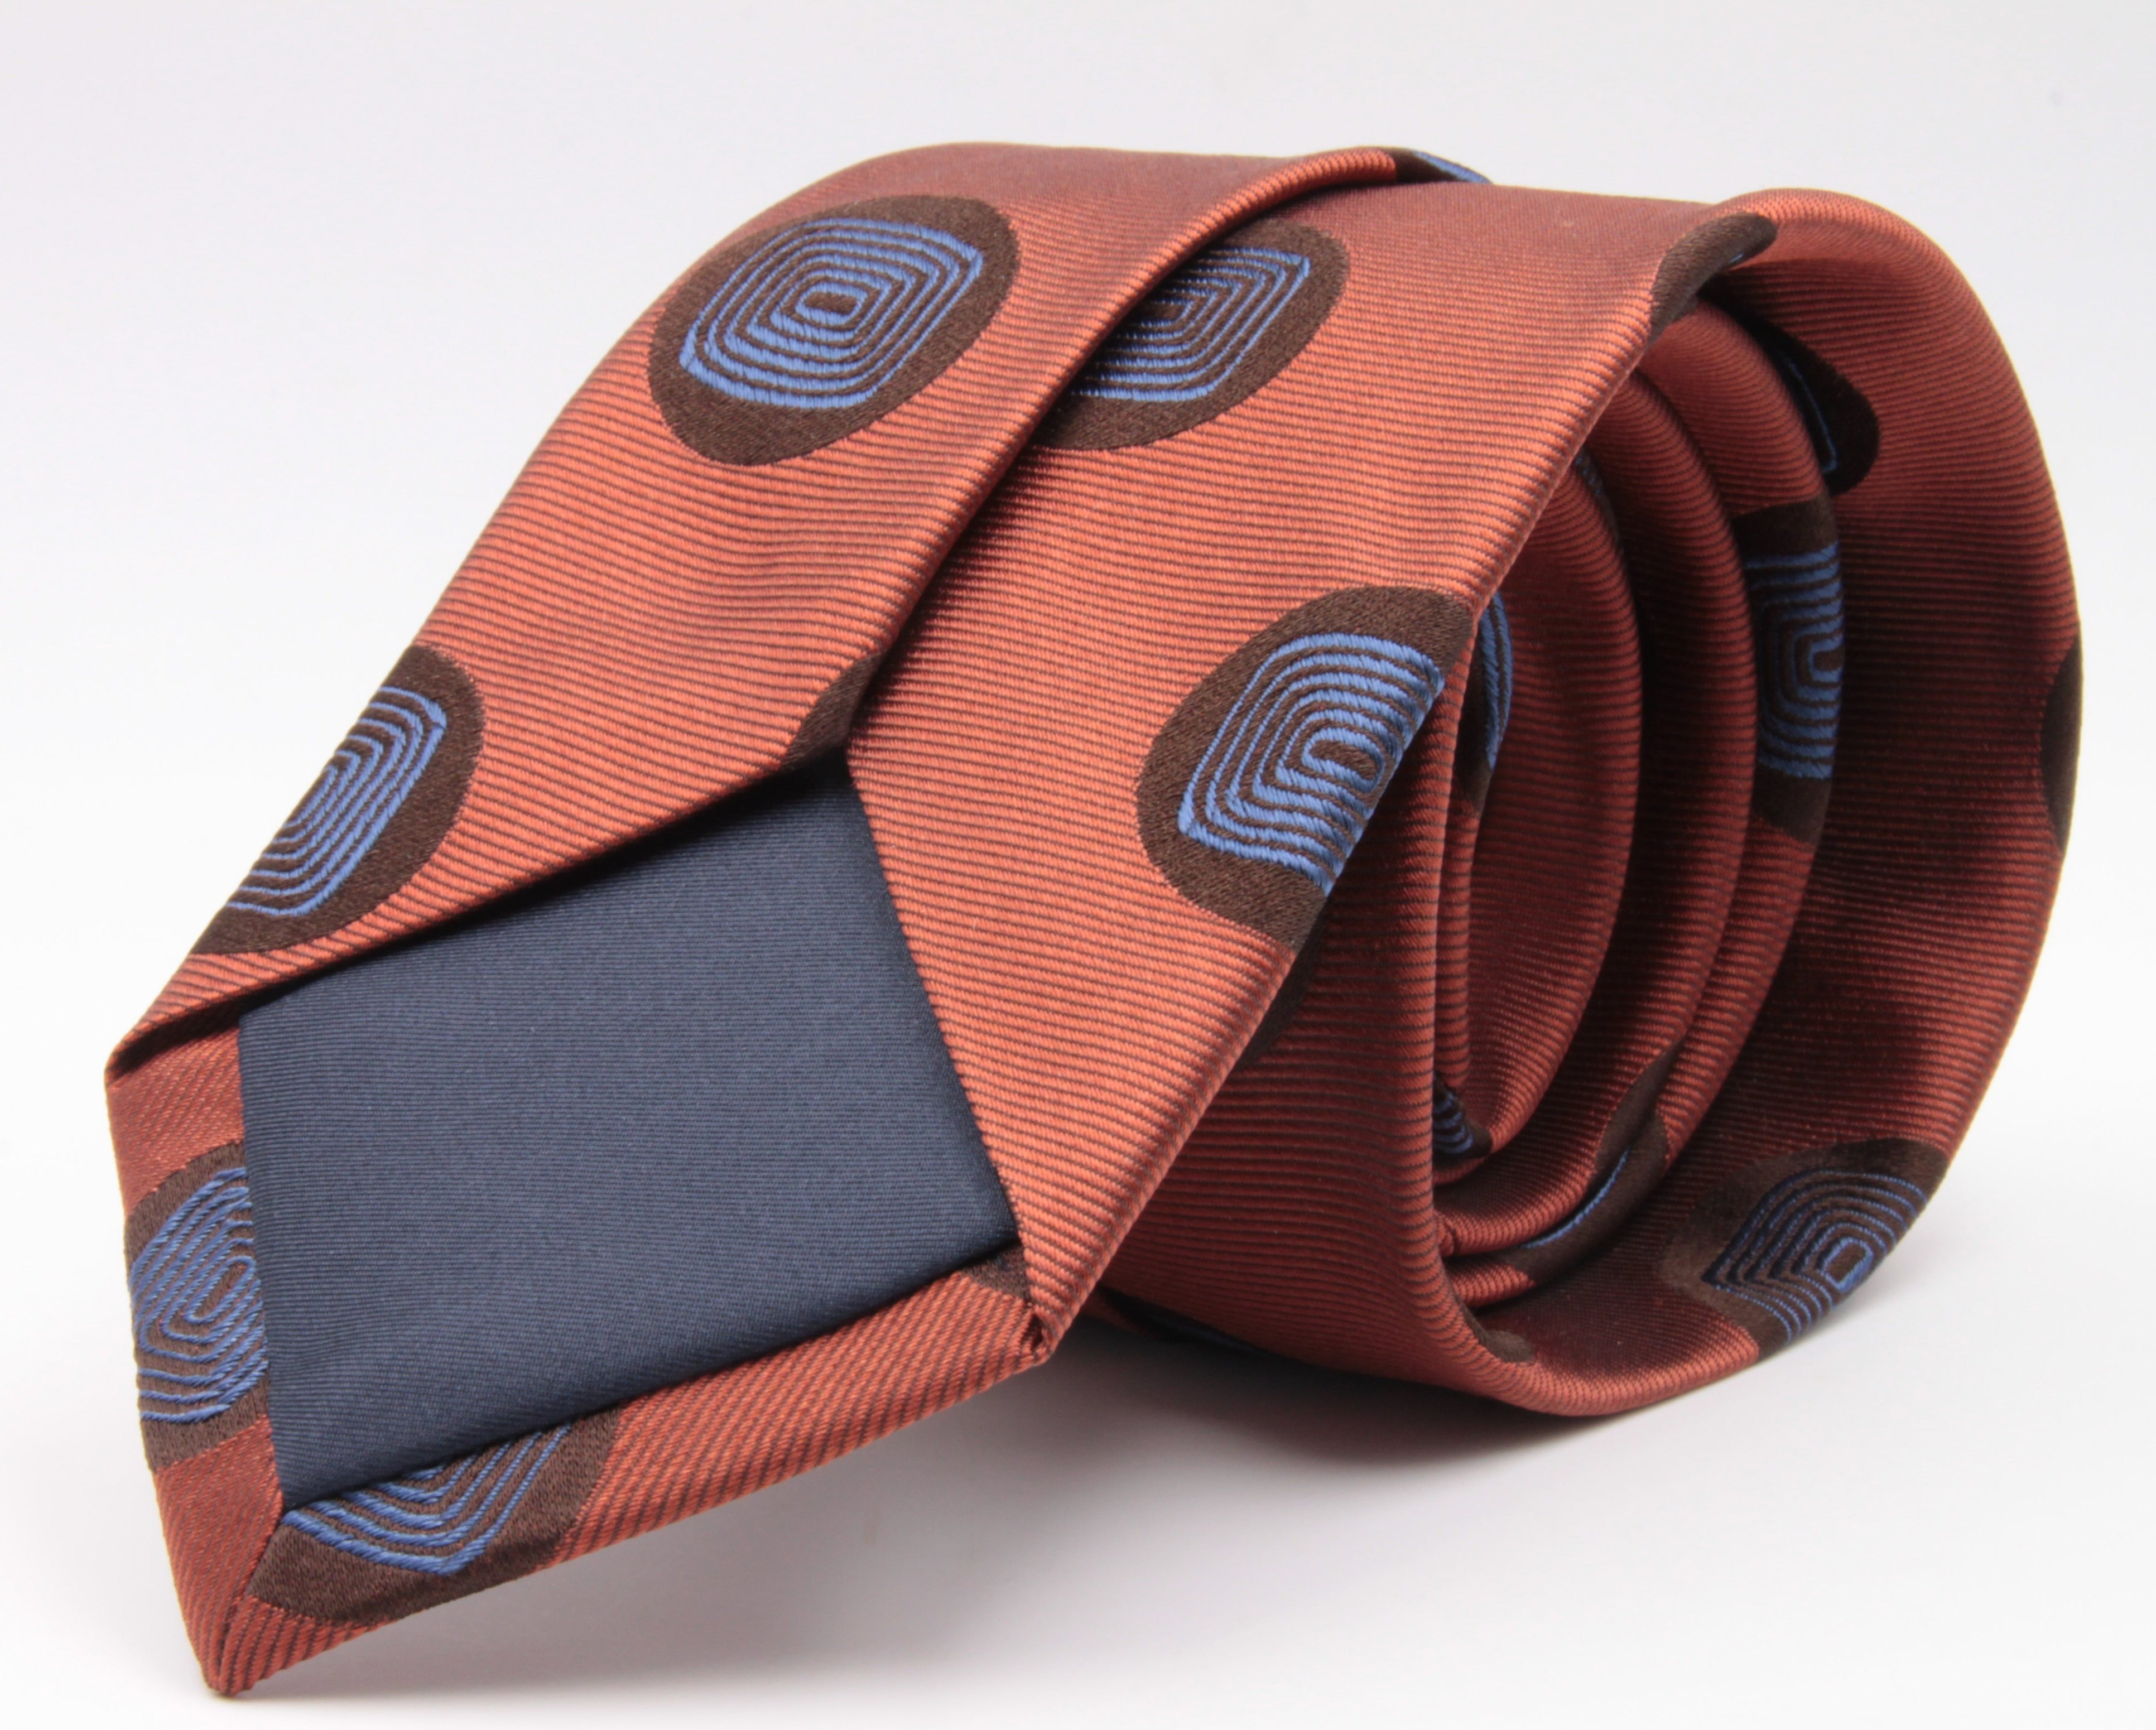 Cruciani & Bella 100% Silk Jacquard  Tipped Orange and Sky-Blue Medallions Tie Handmade in Italy 8 cm x 150 cm #3776